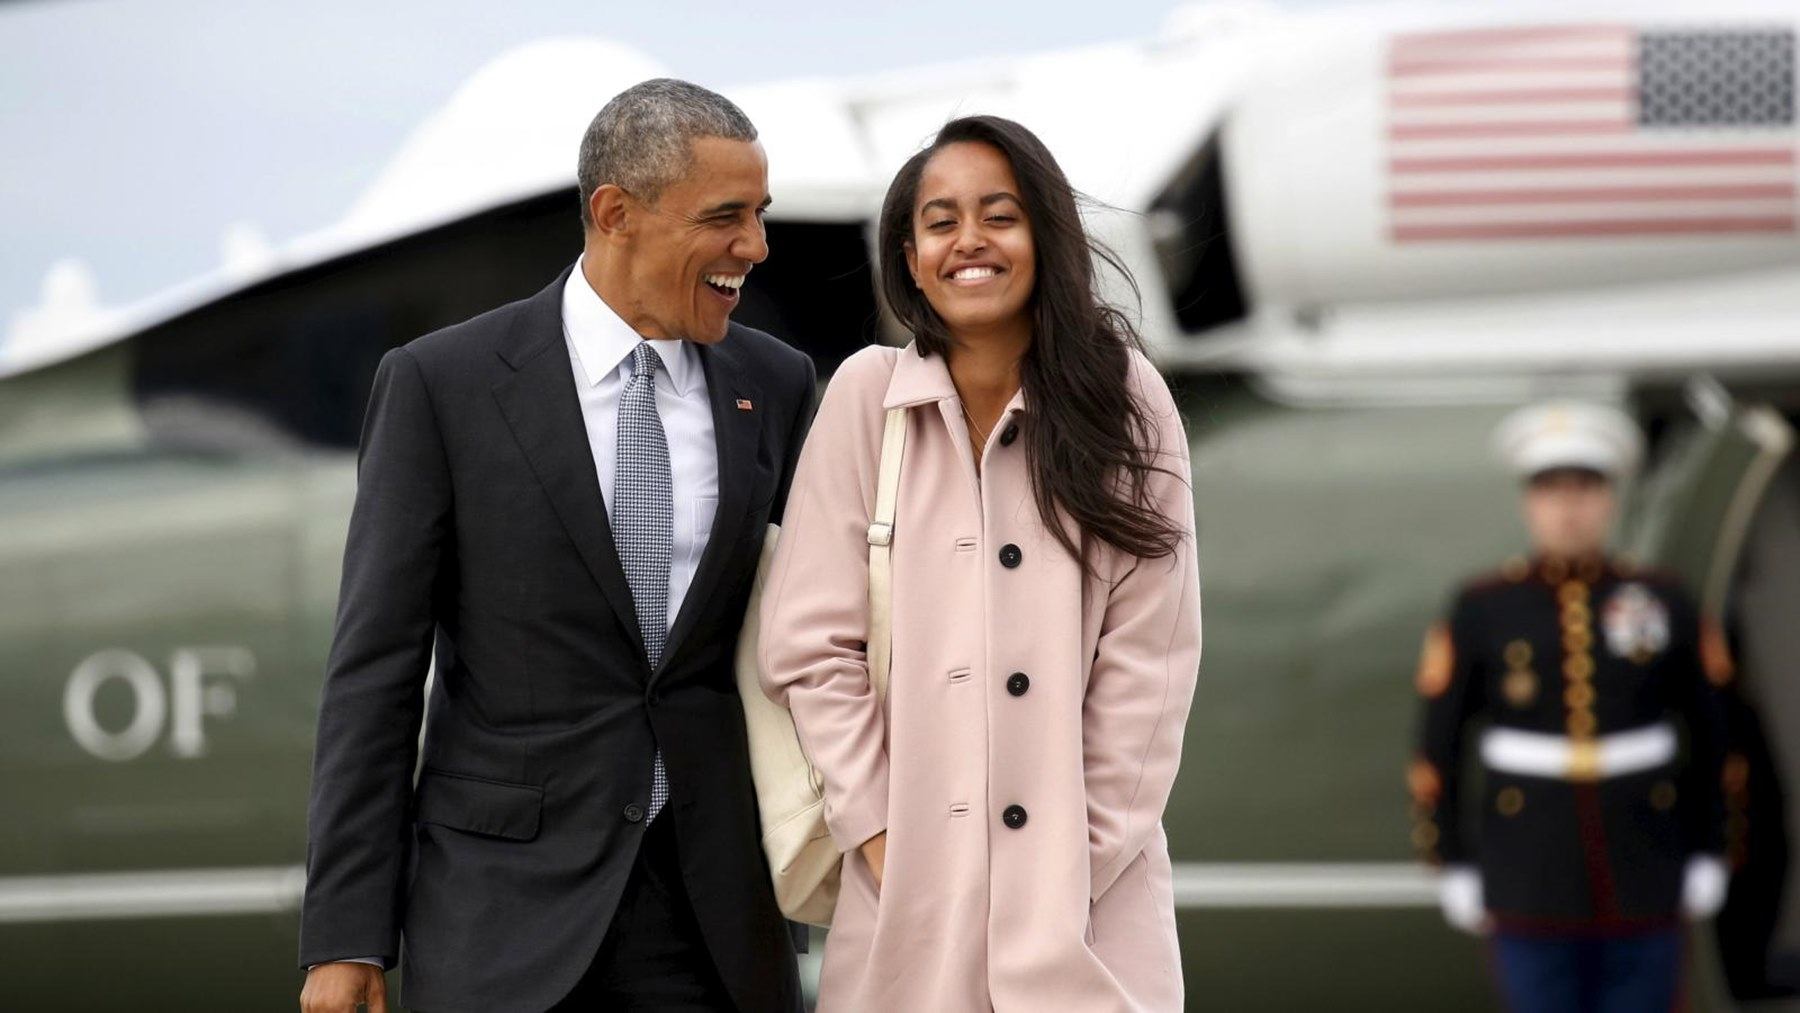 """barack-obamas-eldest-daughter-malia-obama-explores-london-with-her-boyfriend-rory-farquharson-in-sweet-photos-amidst-reports-that-the-romance-is-getting-more-serious"""